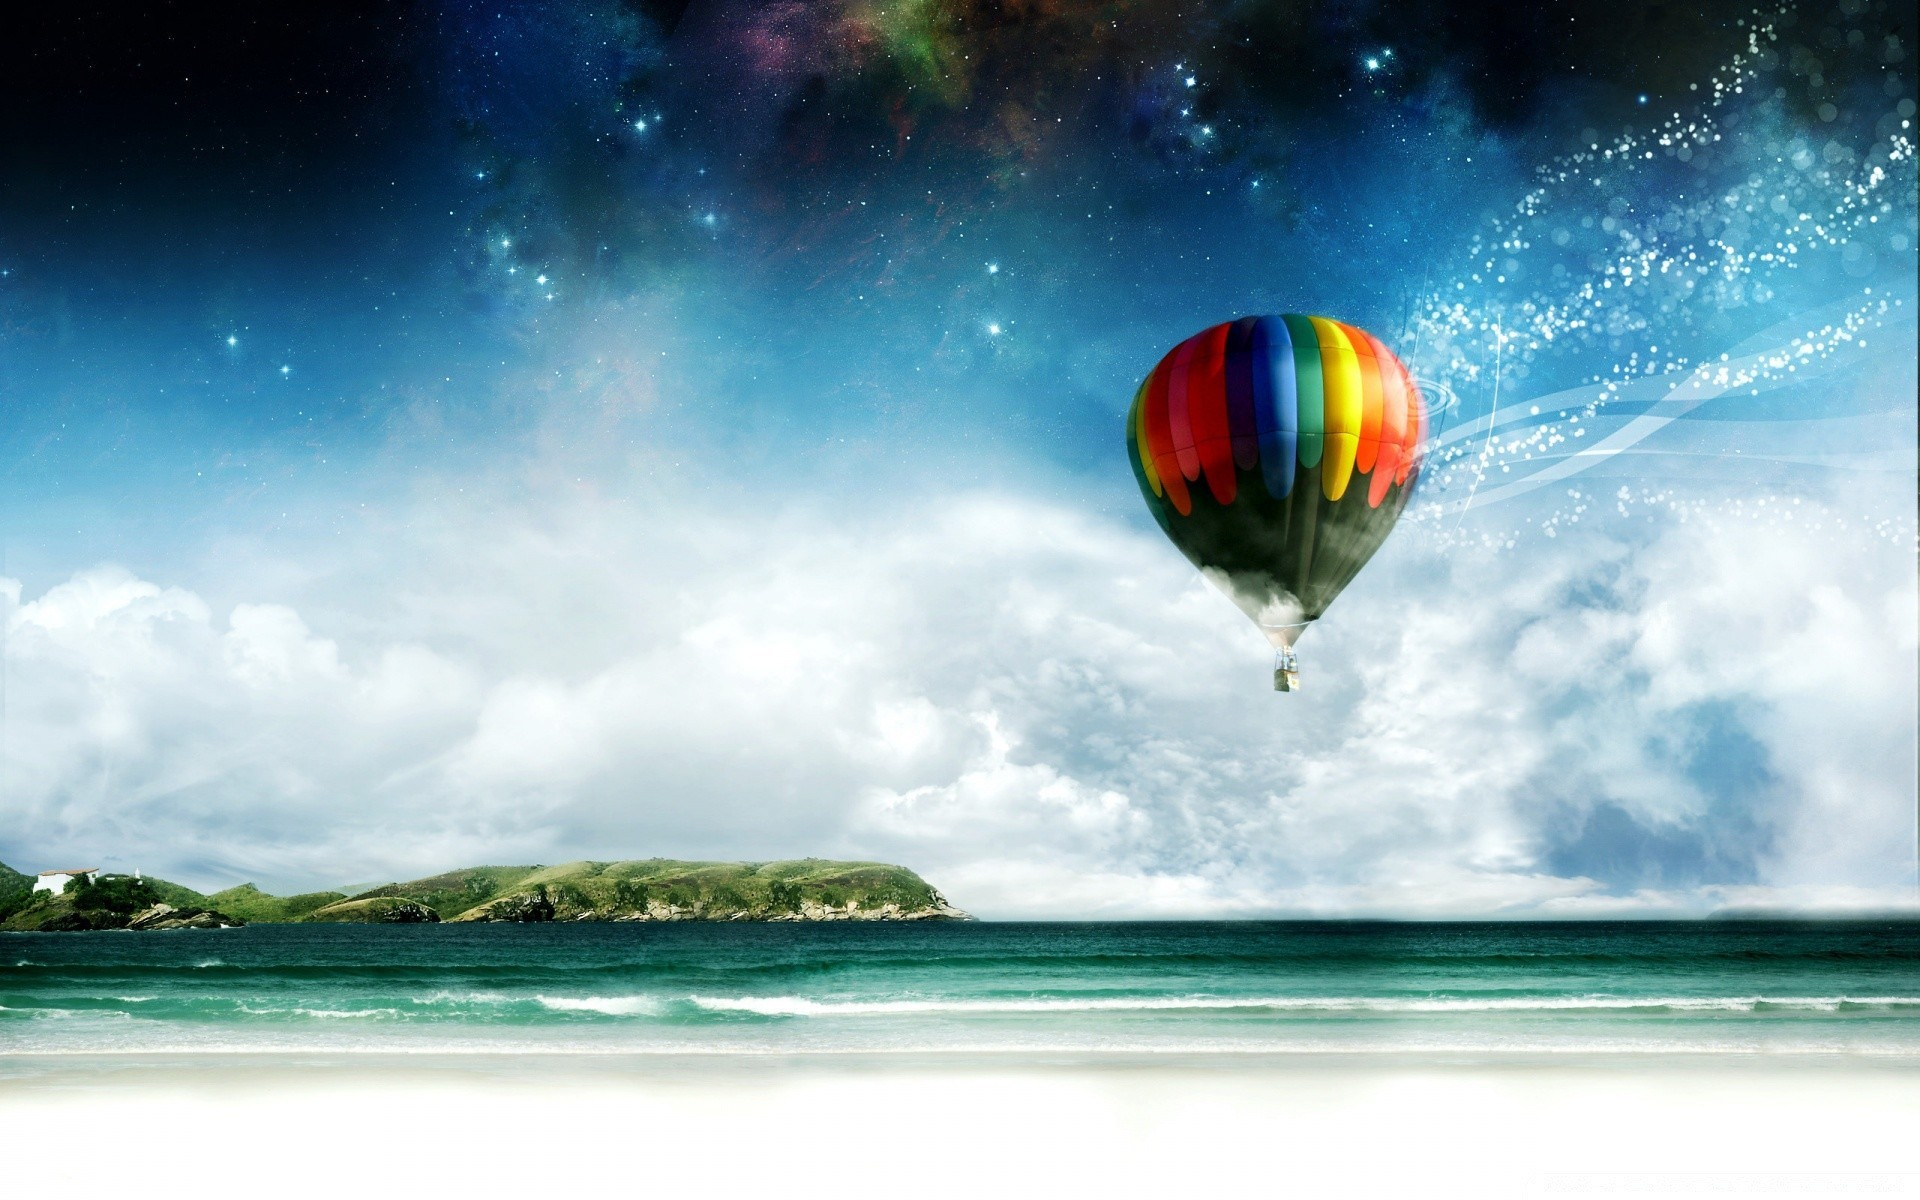 Colorful Hot Air Balloon Ride Android Wallpapers